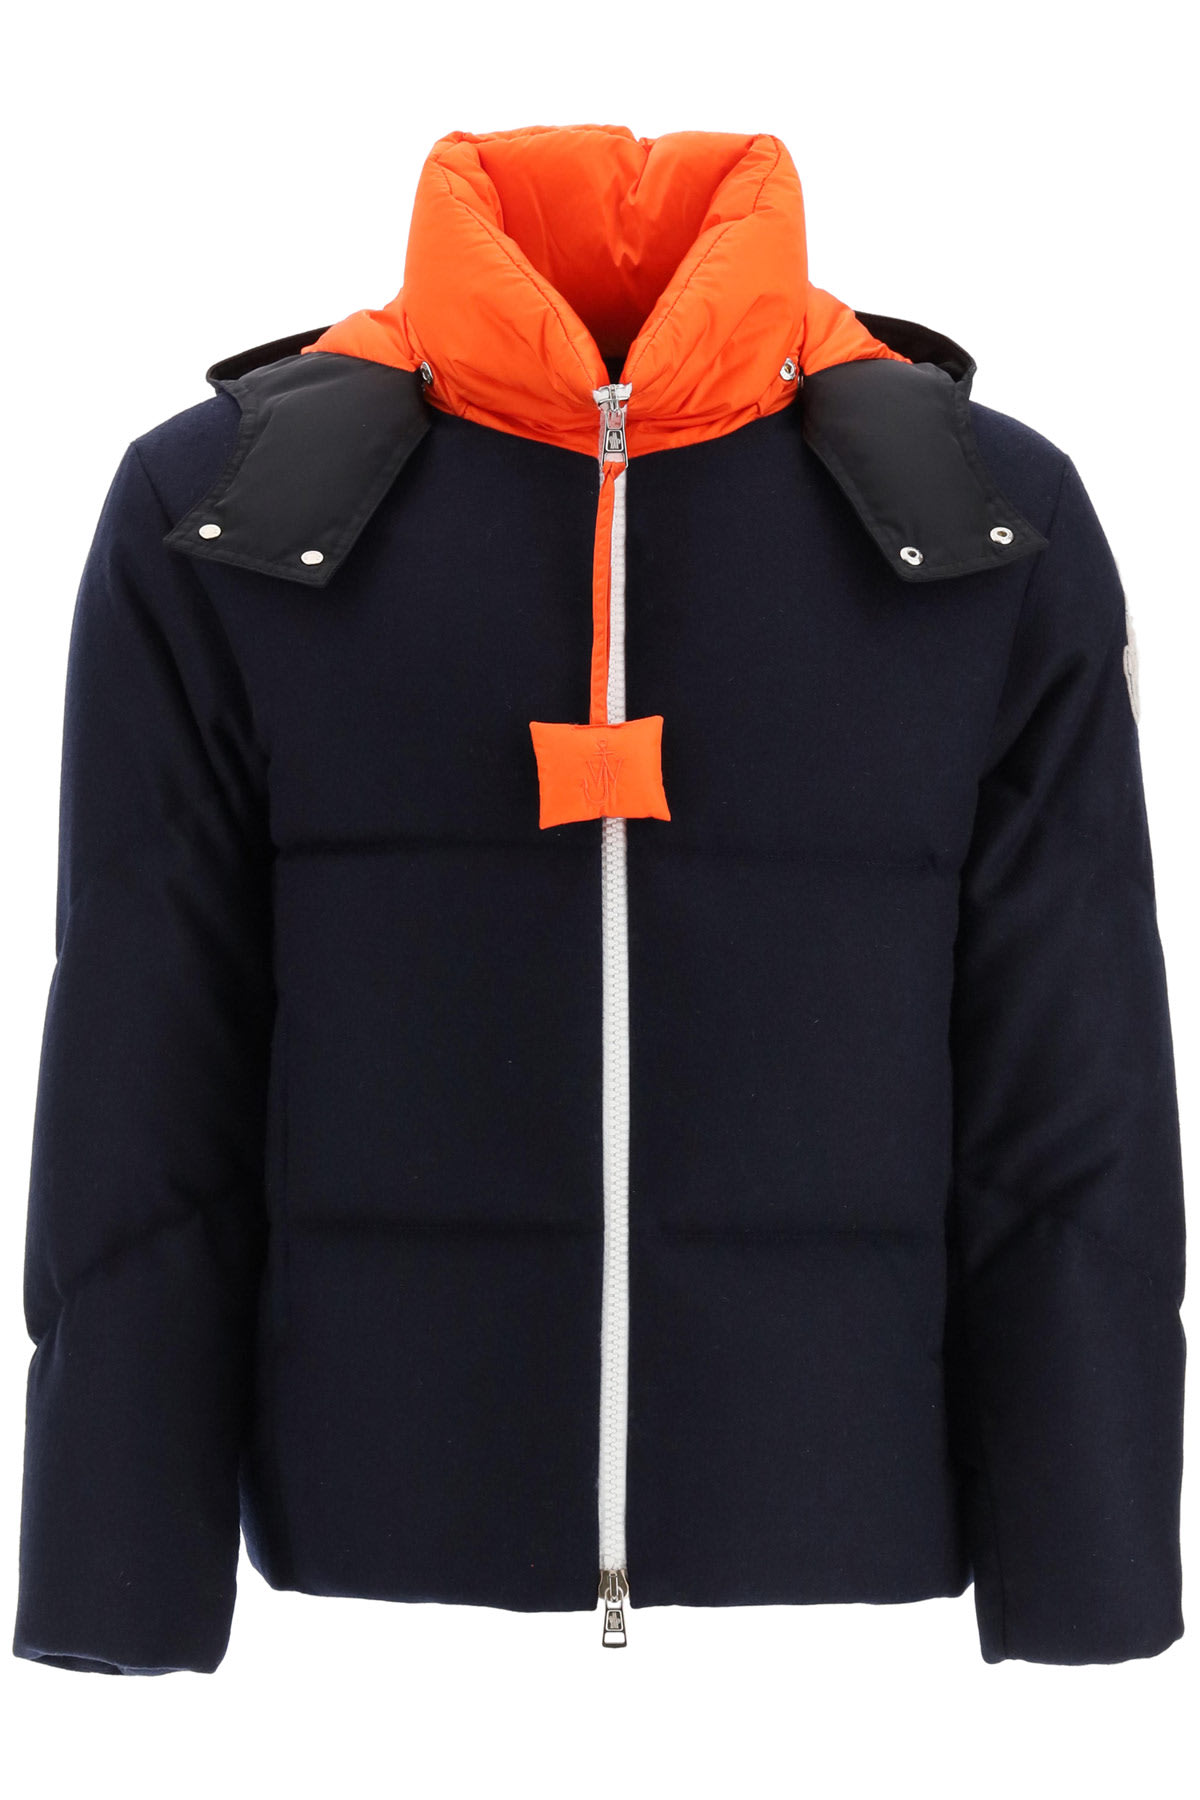 Moncler Genius Downs 1 STONOR DOWN JACKET